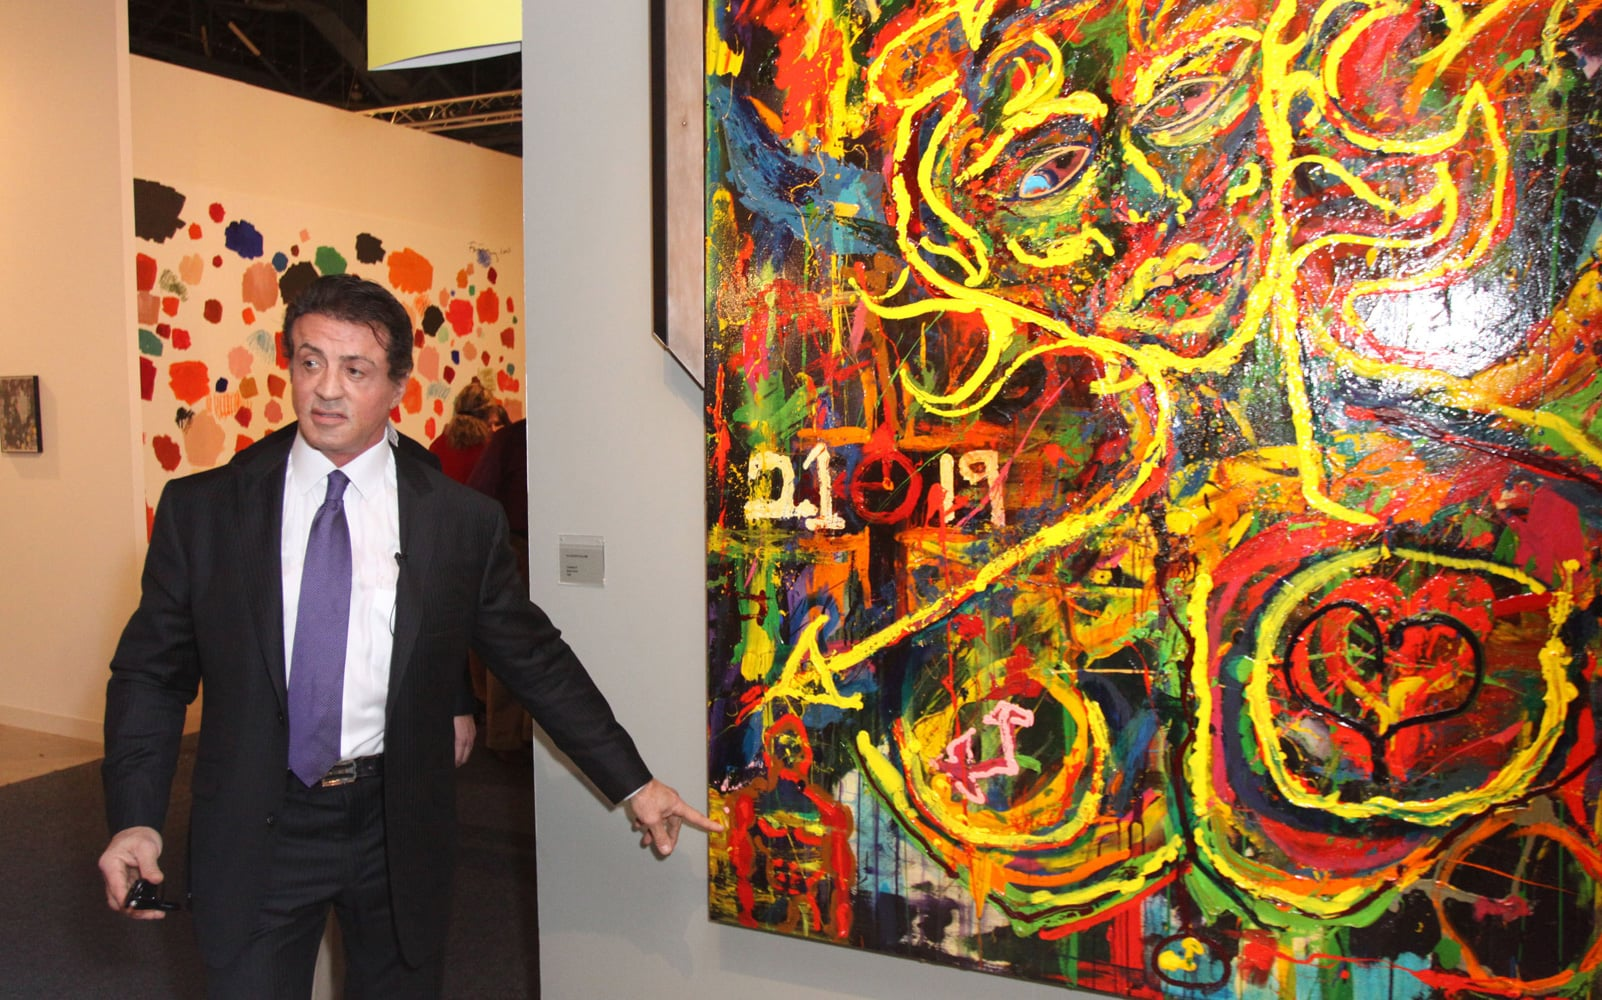 Sylvester Stallone poses with a masterpiece -